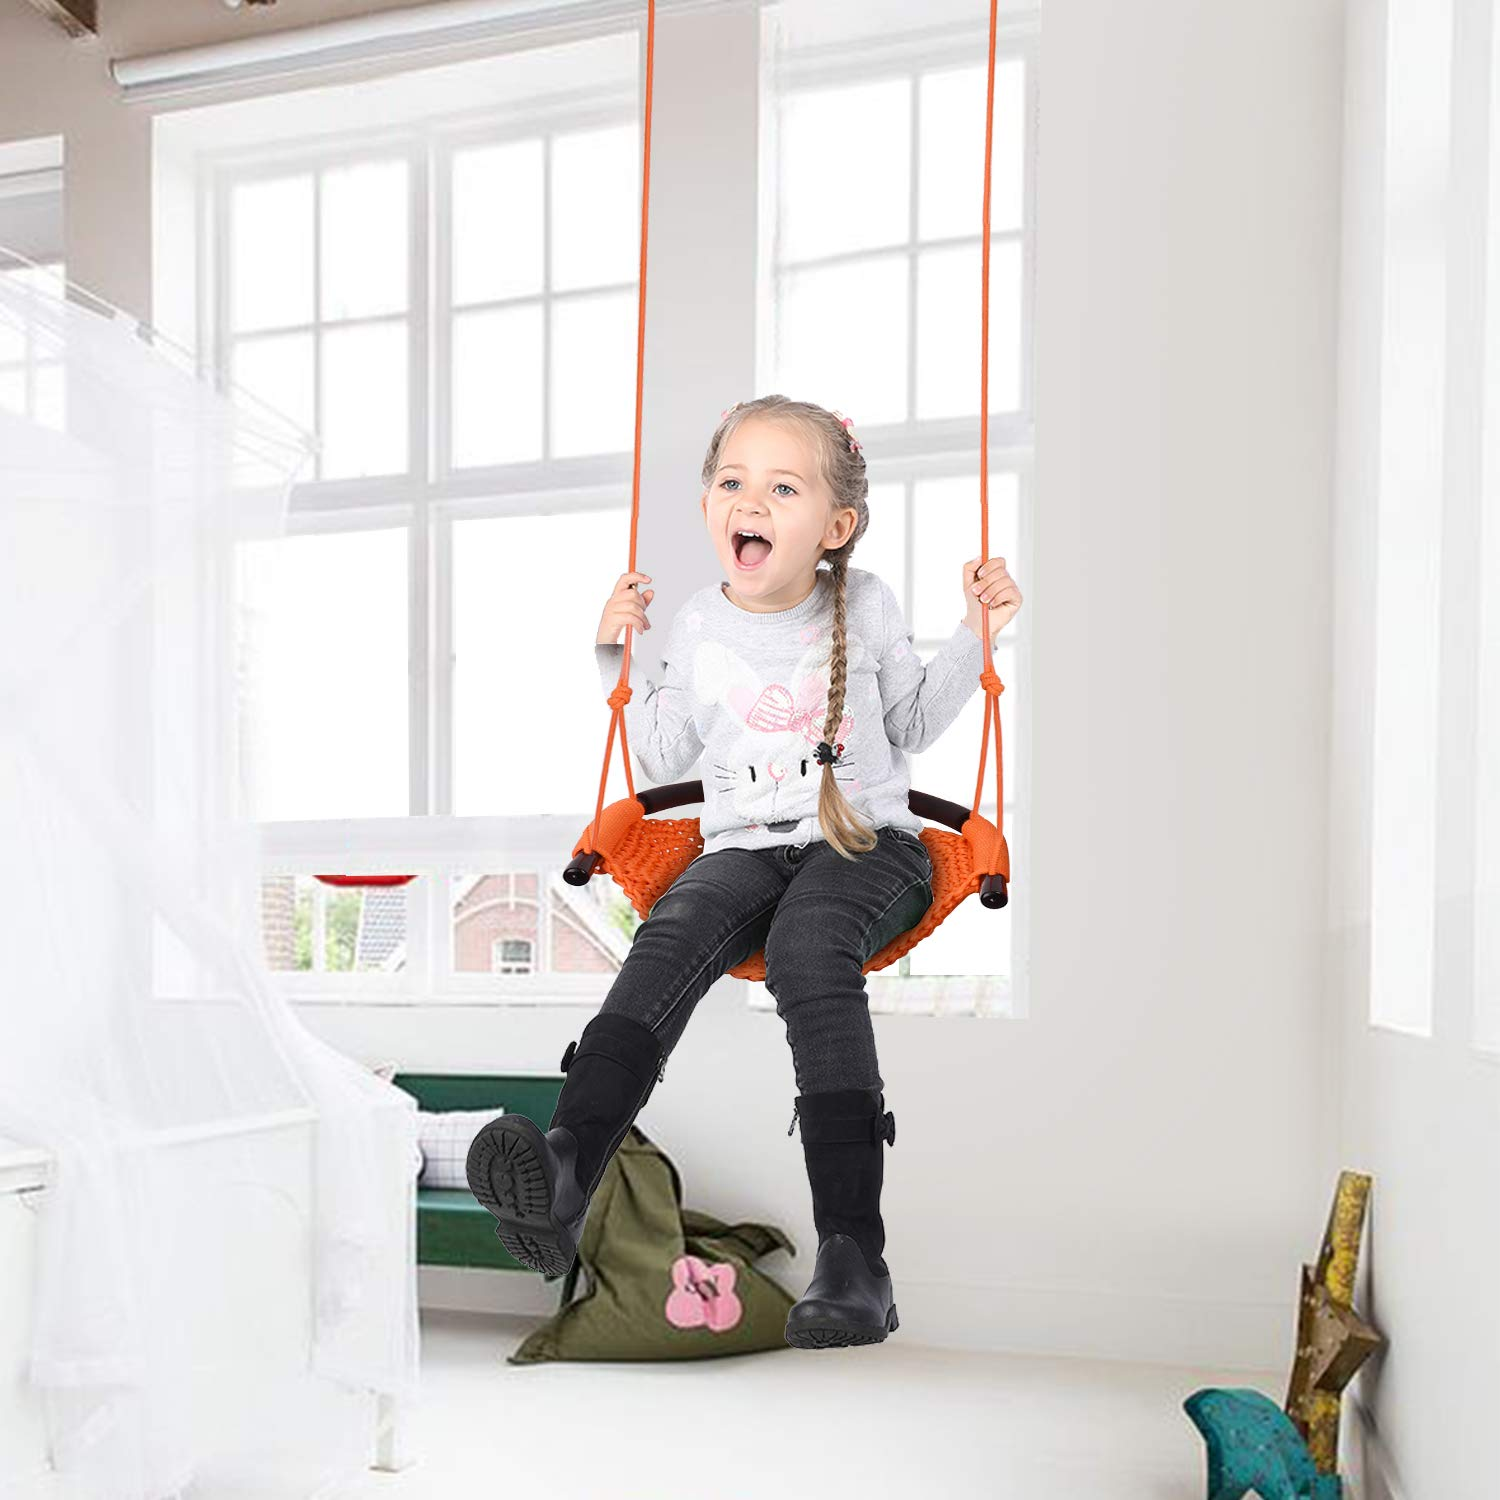 JKsmart Swing Seat for Kids Heavy Duty Rope Play Secure Children Swing Set,Perfect for Indoor,Outdoor,Playground,Home,Tree,with Snap Hooks and Swing Straps,440 lbs Capacity,Orange(Patent Pending) by JKsmart (Image #7)